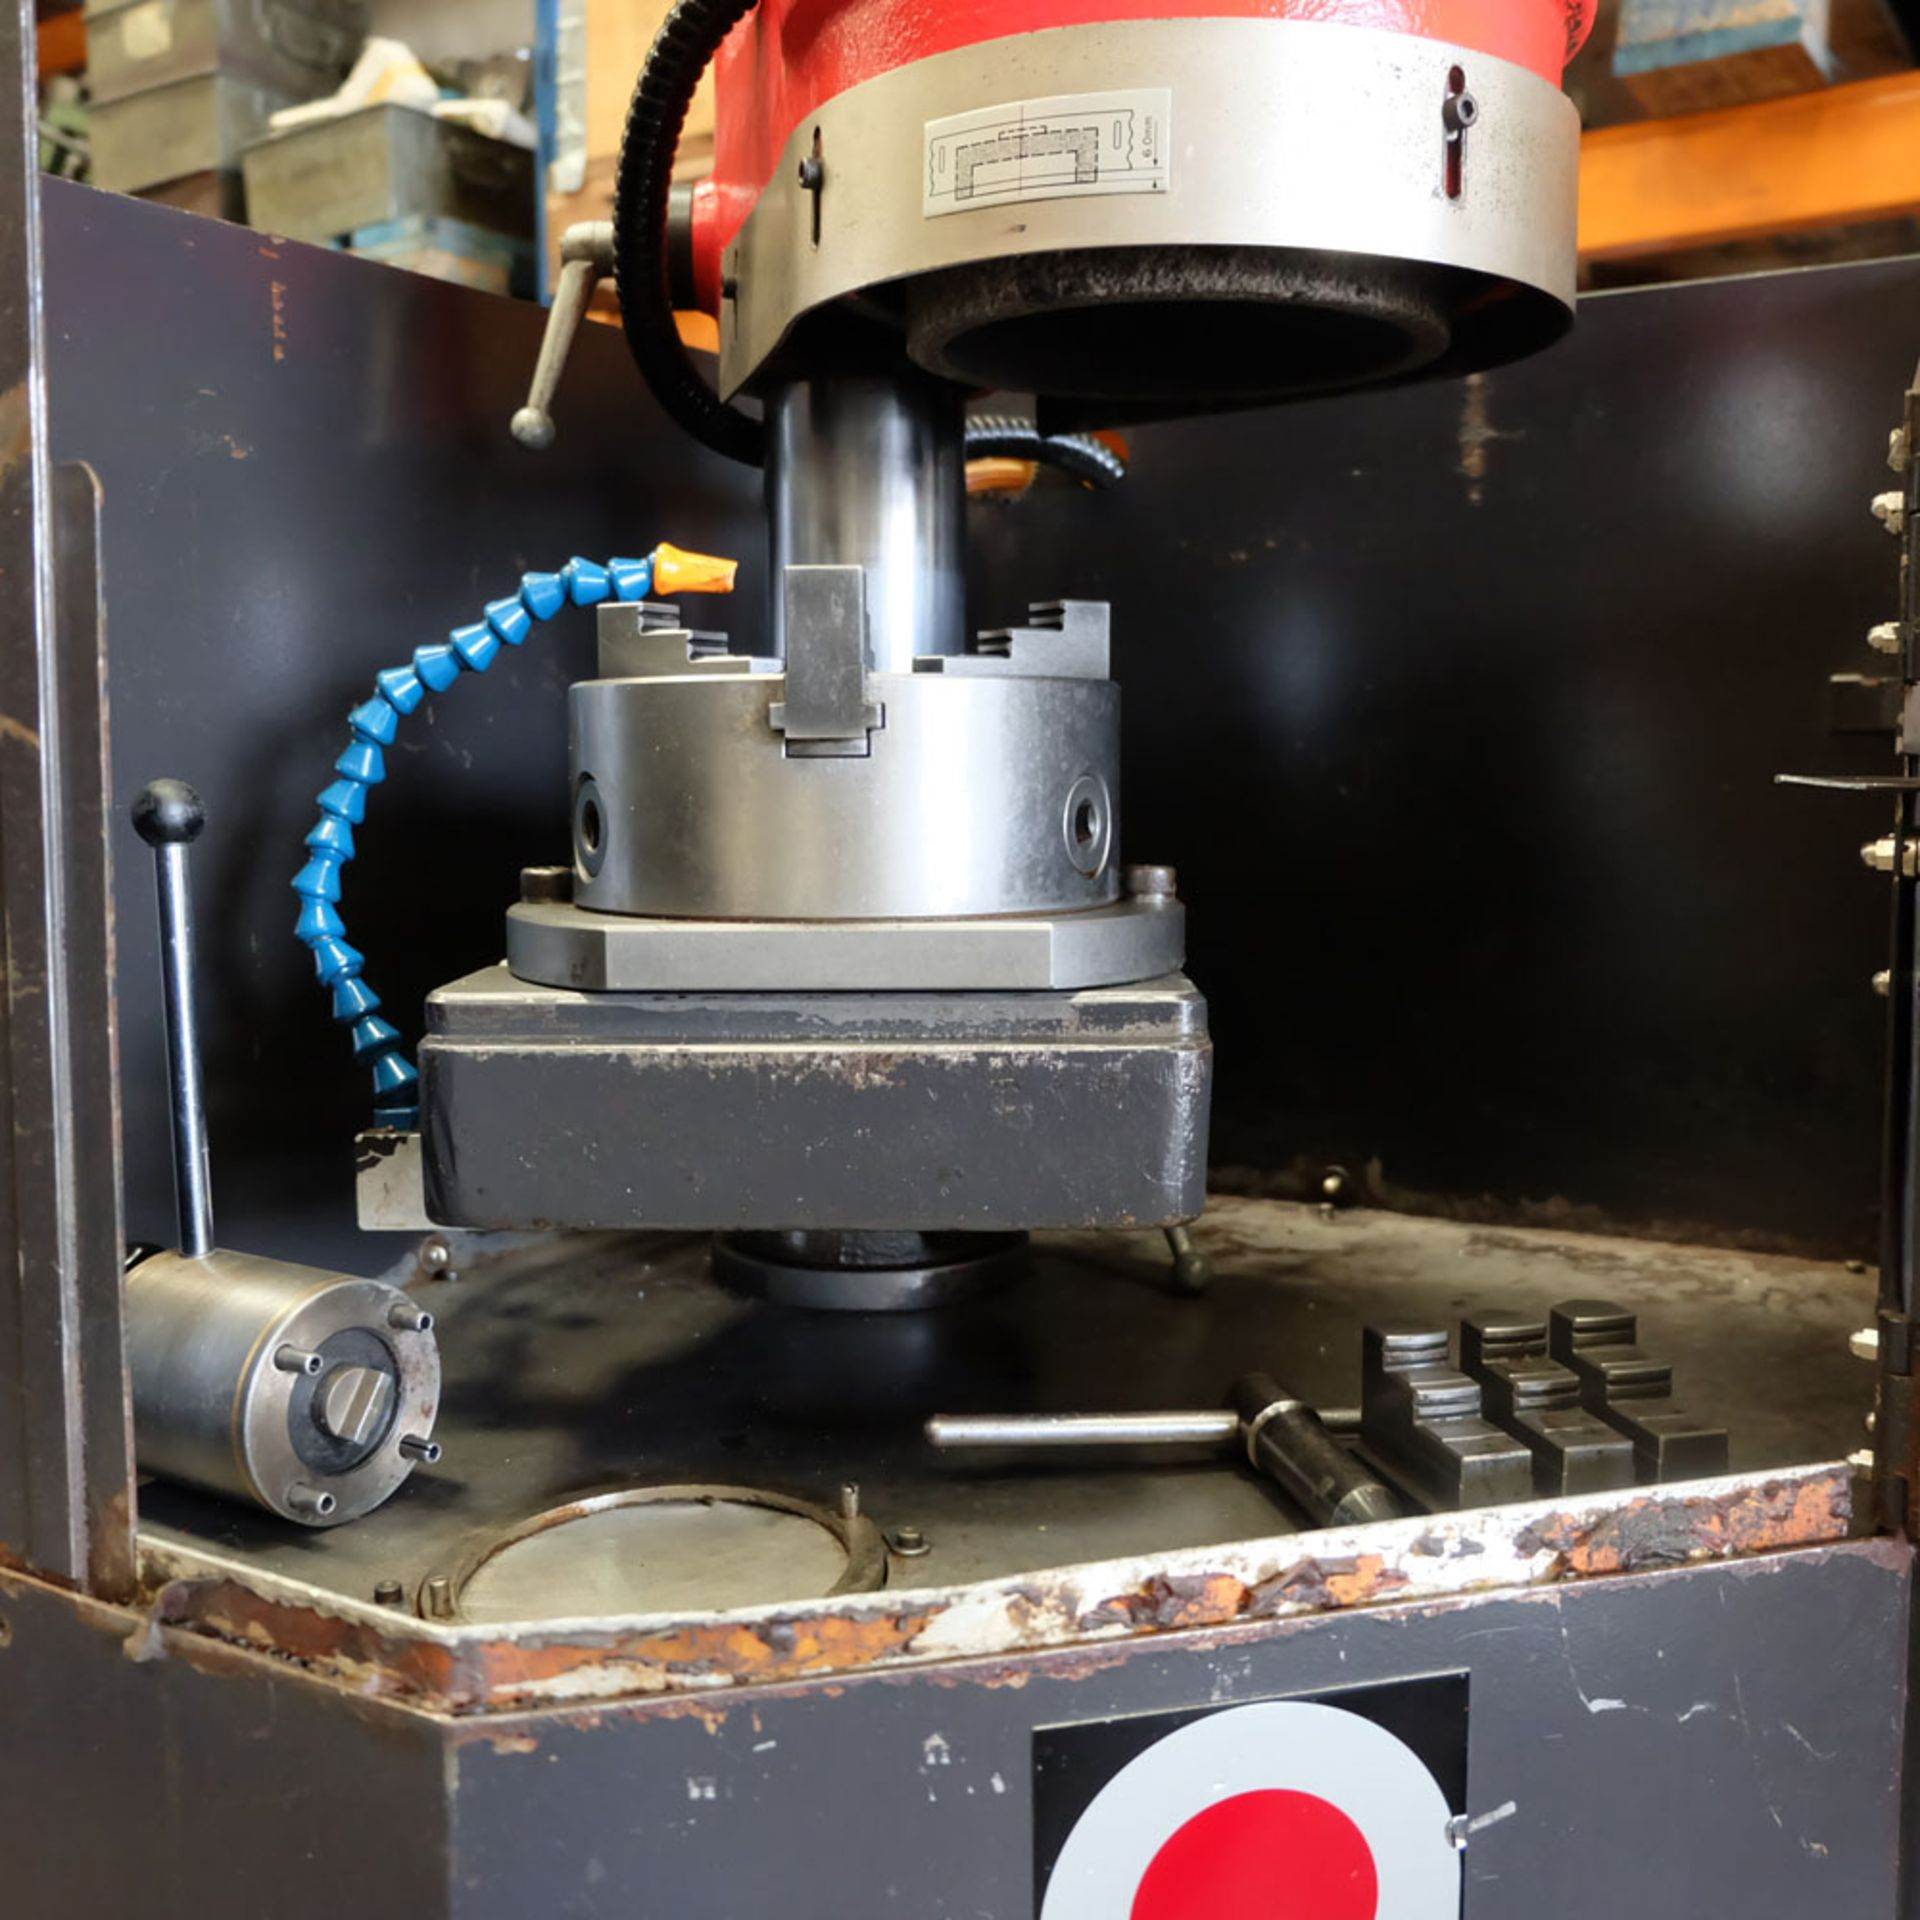 Amada TEG 160 ES - Tool Grinder. Grinding Capacity 160mm. Cup Wheel Diameter 180mm. - Image 9 of 9